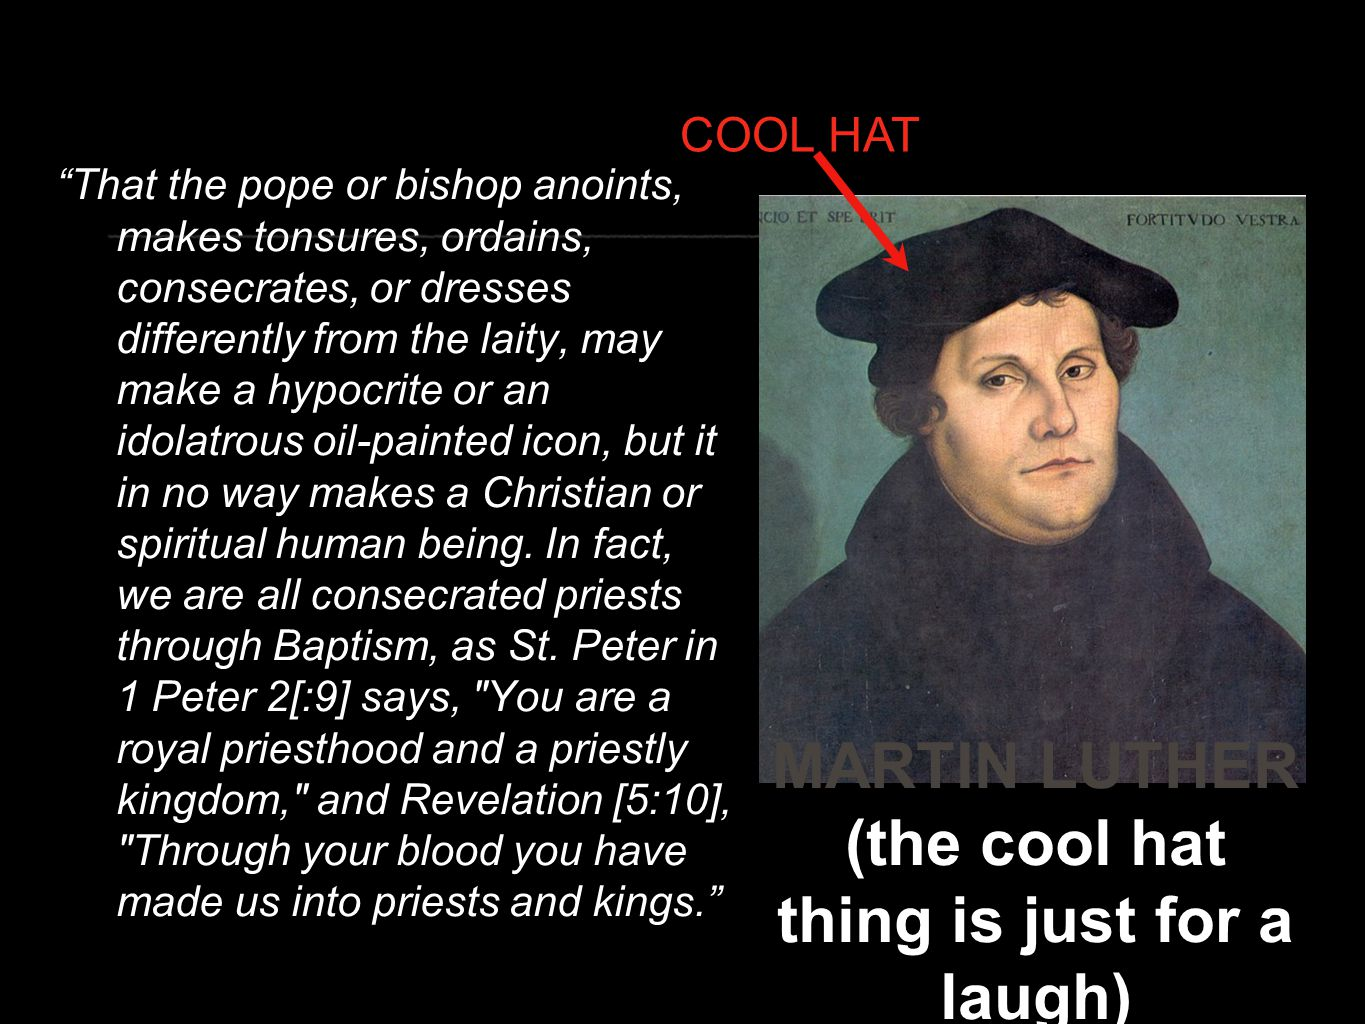 """""""That the pope or bishop anoints, makes tonsures, ordains, consecrates, or dresses differently from the laity, may make a hypocrite or an idolatrous o"""